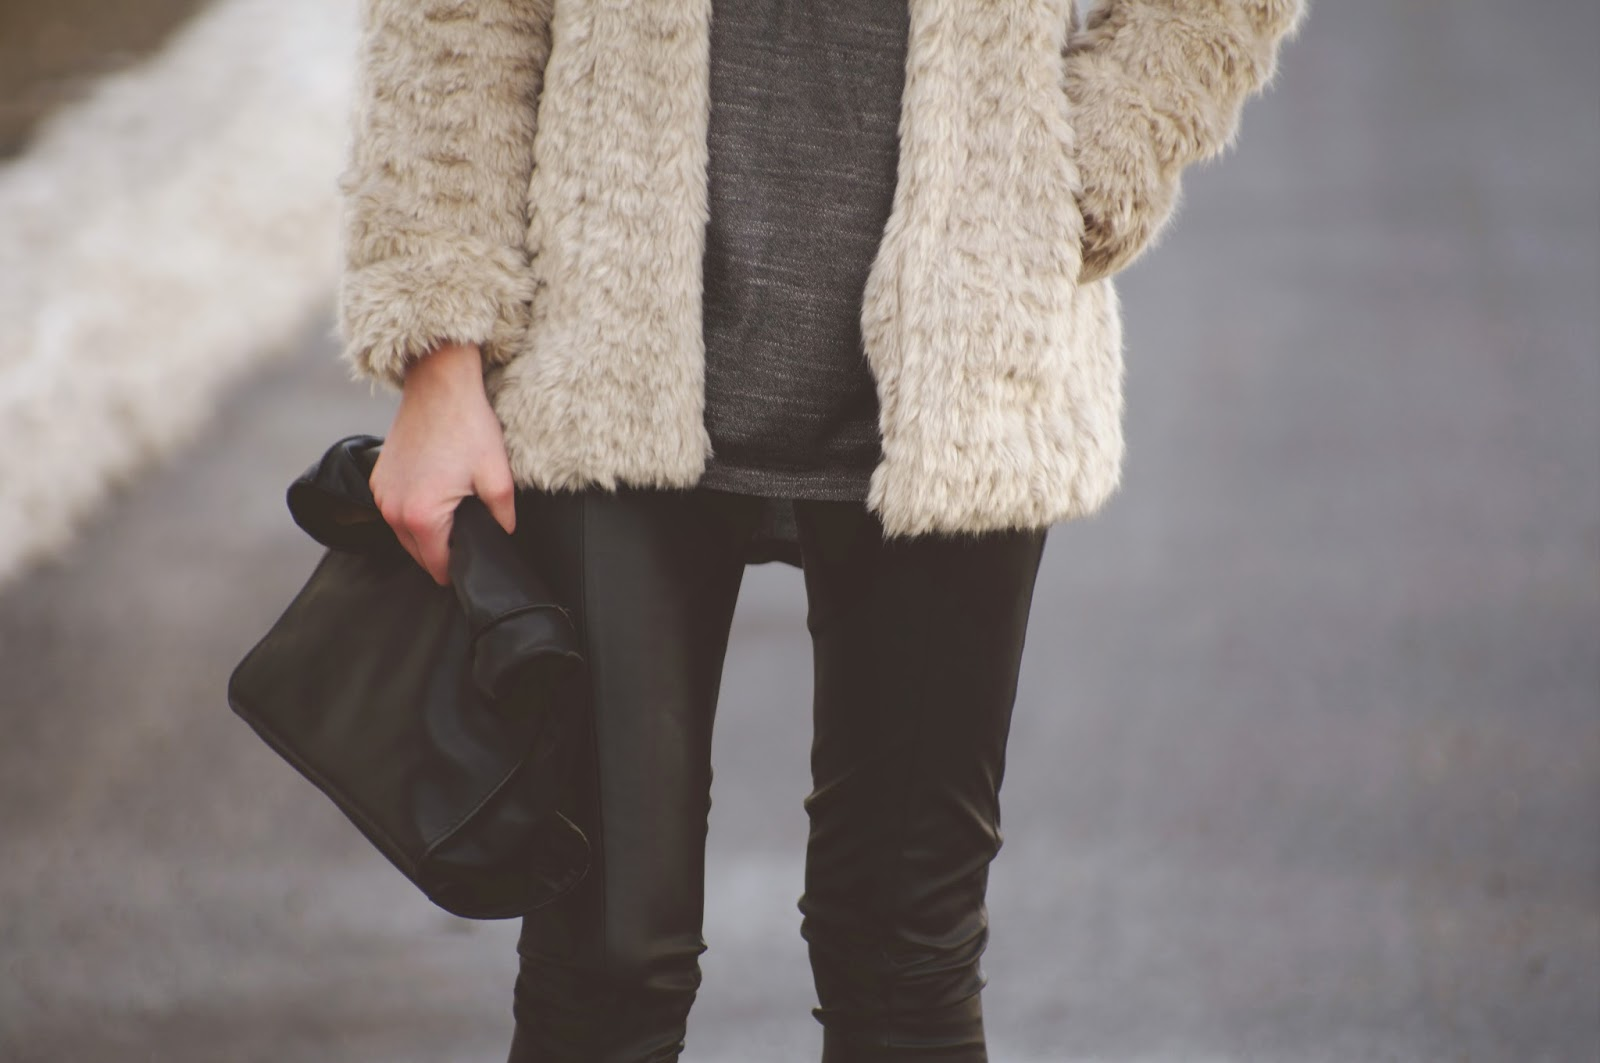 faux fur coat amisu new yorker, fashion trends 2014 winter, layering outfit, stylowebuty boots botki, zara leather lunch bag, style blogger, fashion blogger, slovenski modni bloger blogerka